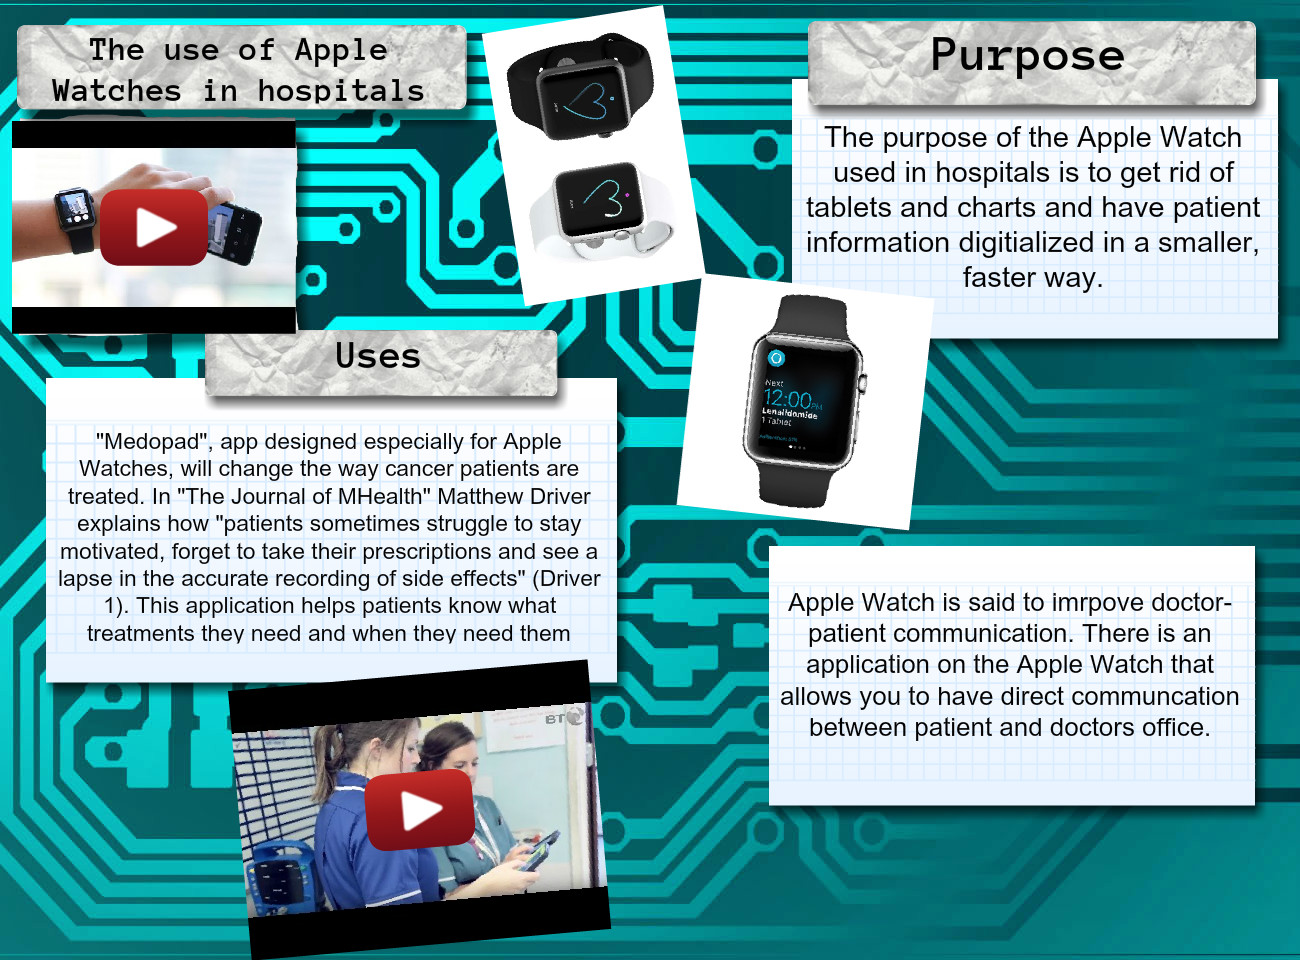 The Use of Apple Watches in Hospitals